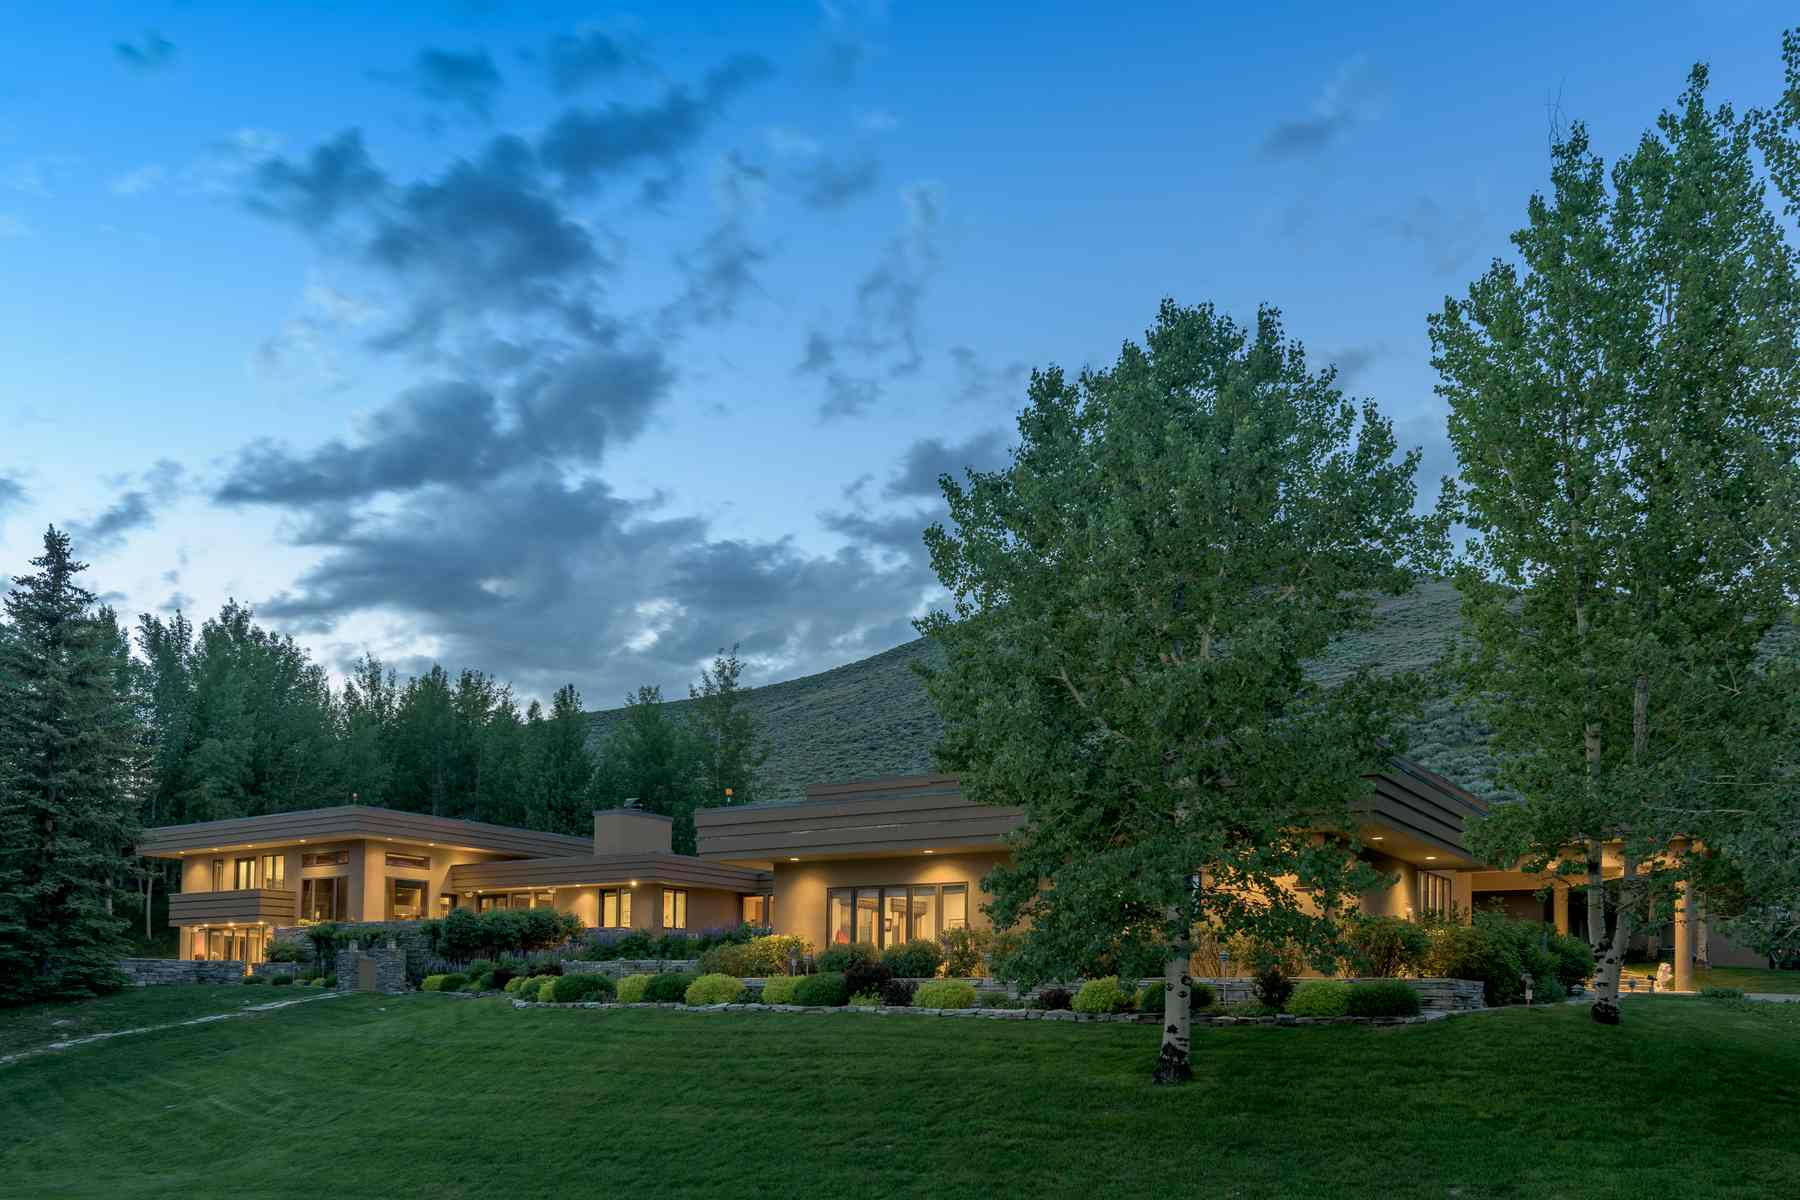 Maison unifamiliale pour l Vente à Spectacular Elevated Setting 455 N. Bigwood Drive Ketchum, Idaho 83340 États-Unis